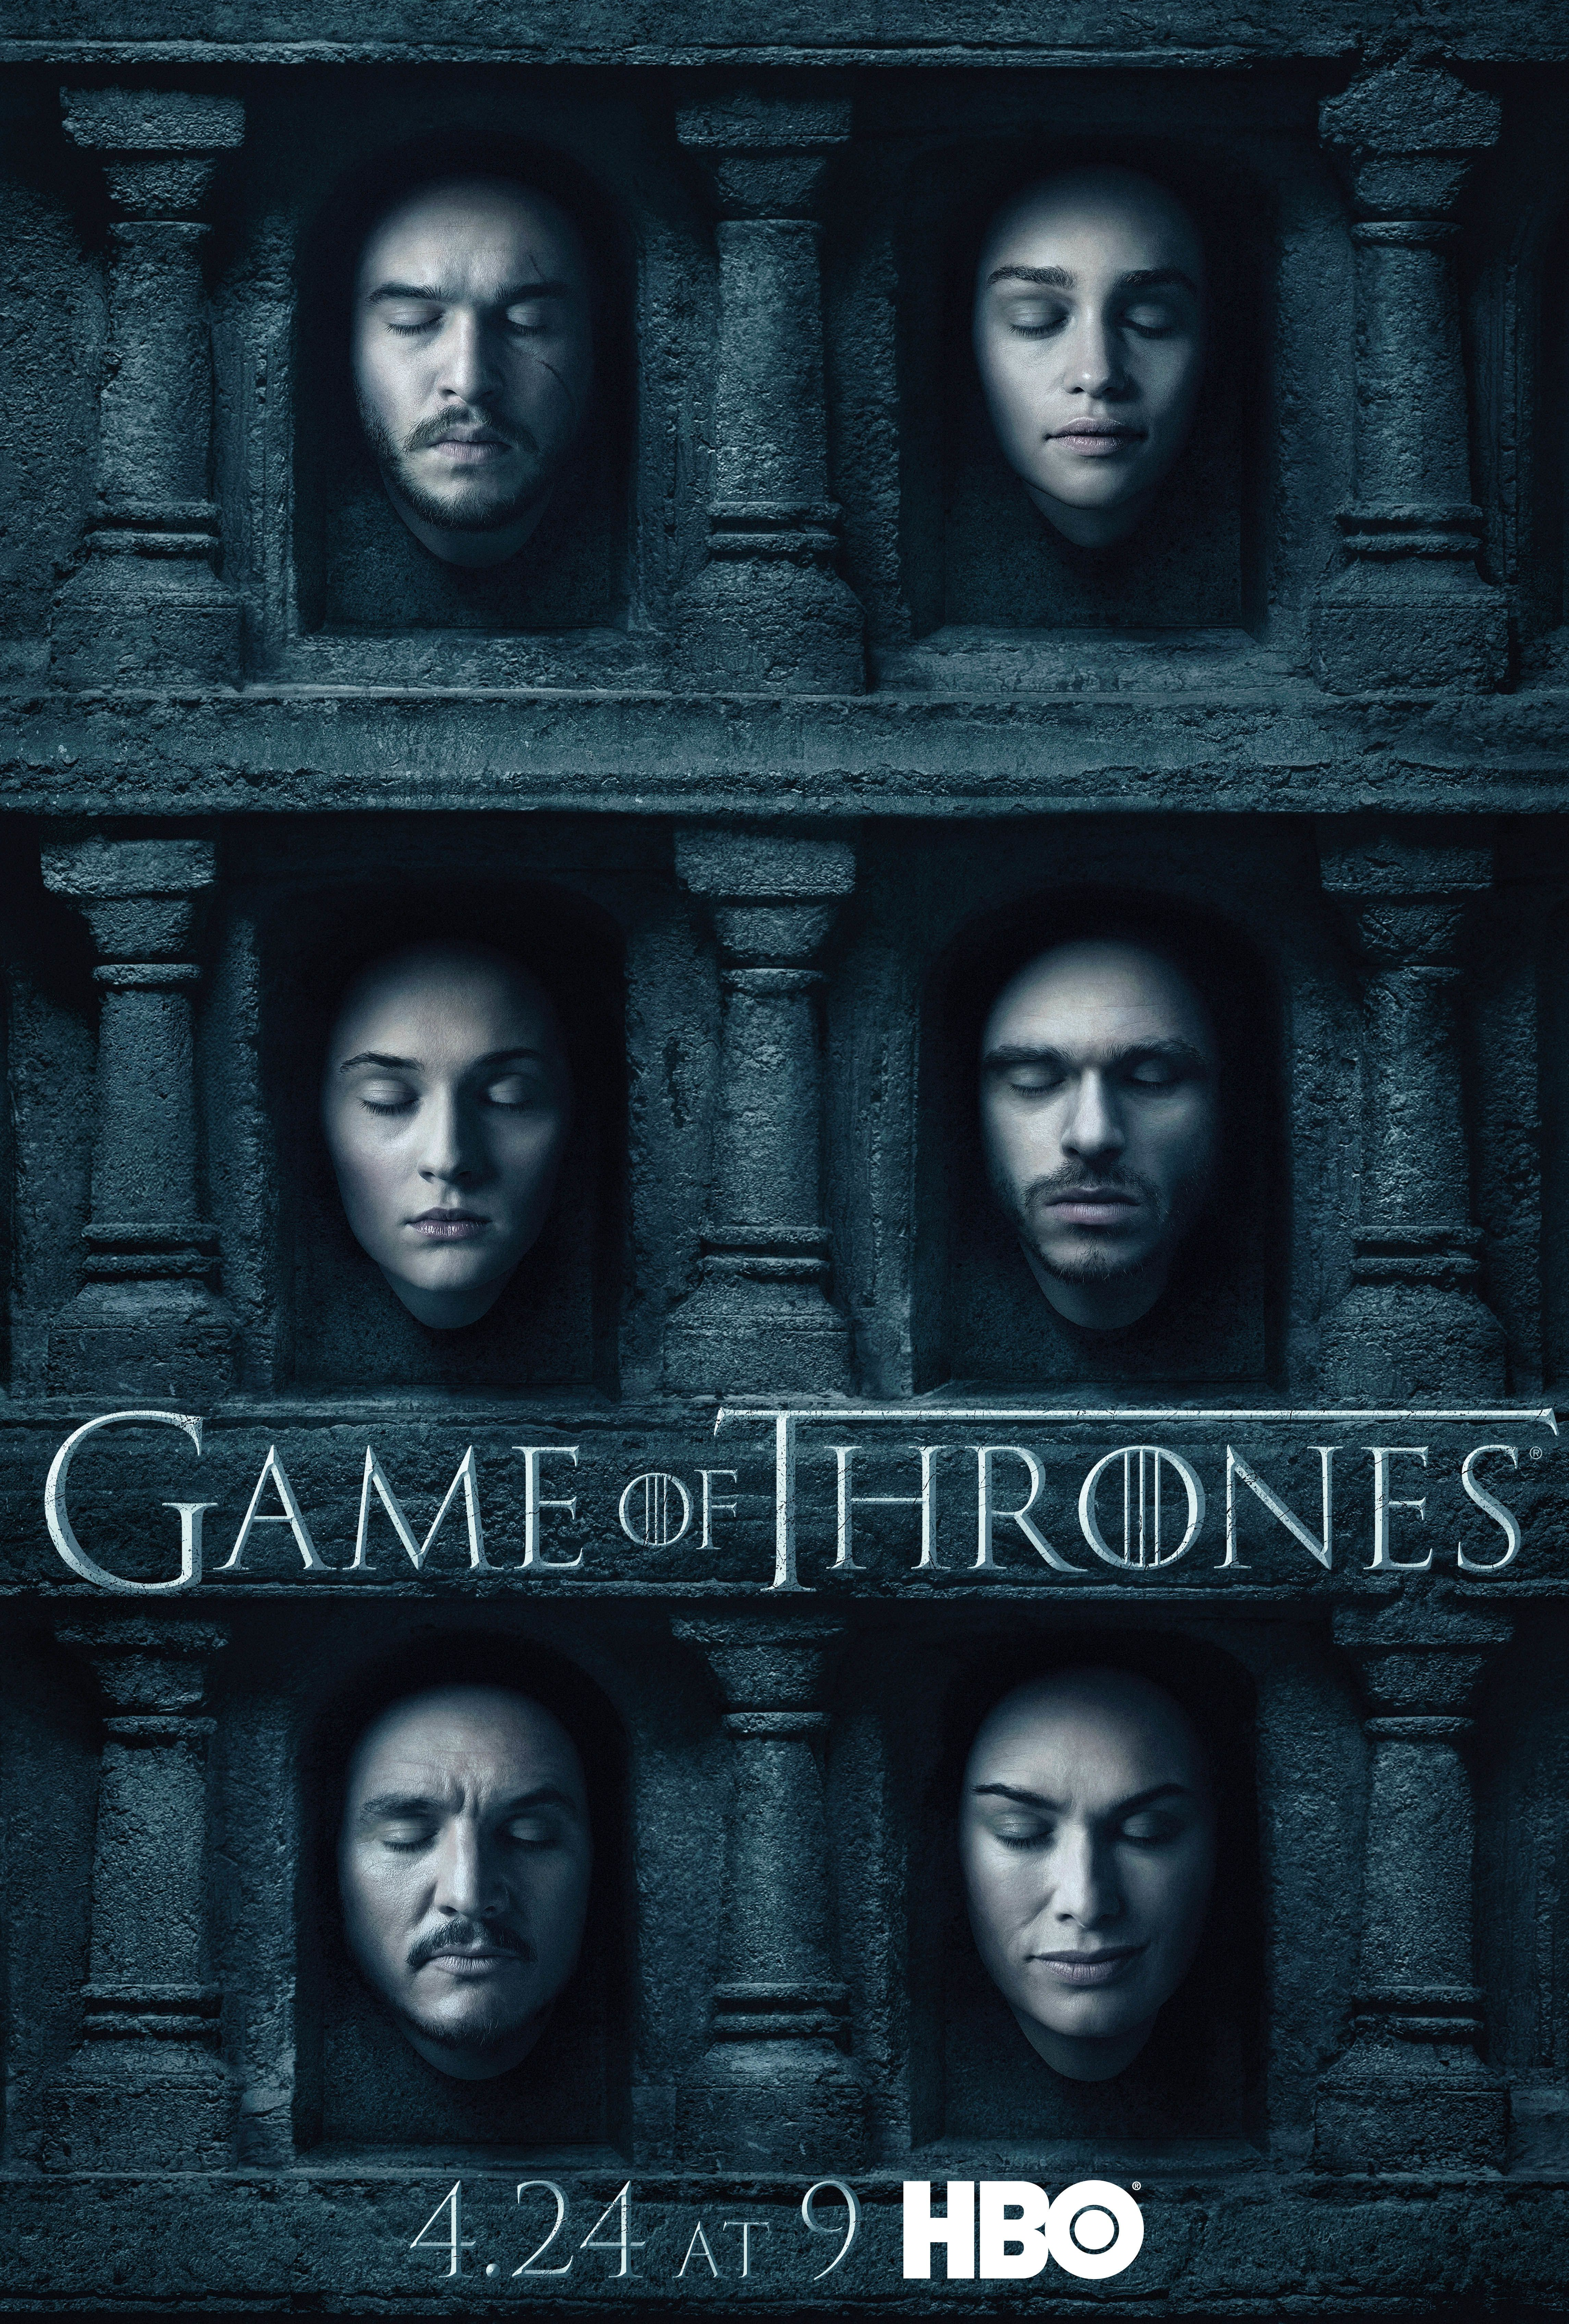 Game Of Thrones Season 6 Posters Game Of Thrones Poster Watch Game Of Thrones Game Of Thrones Online